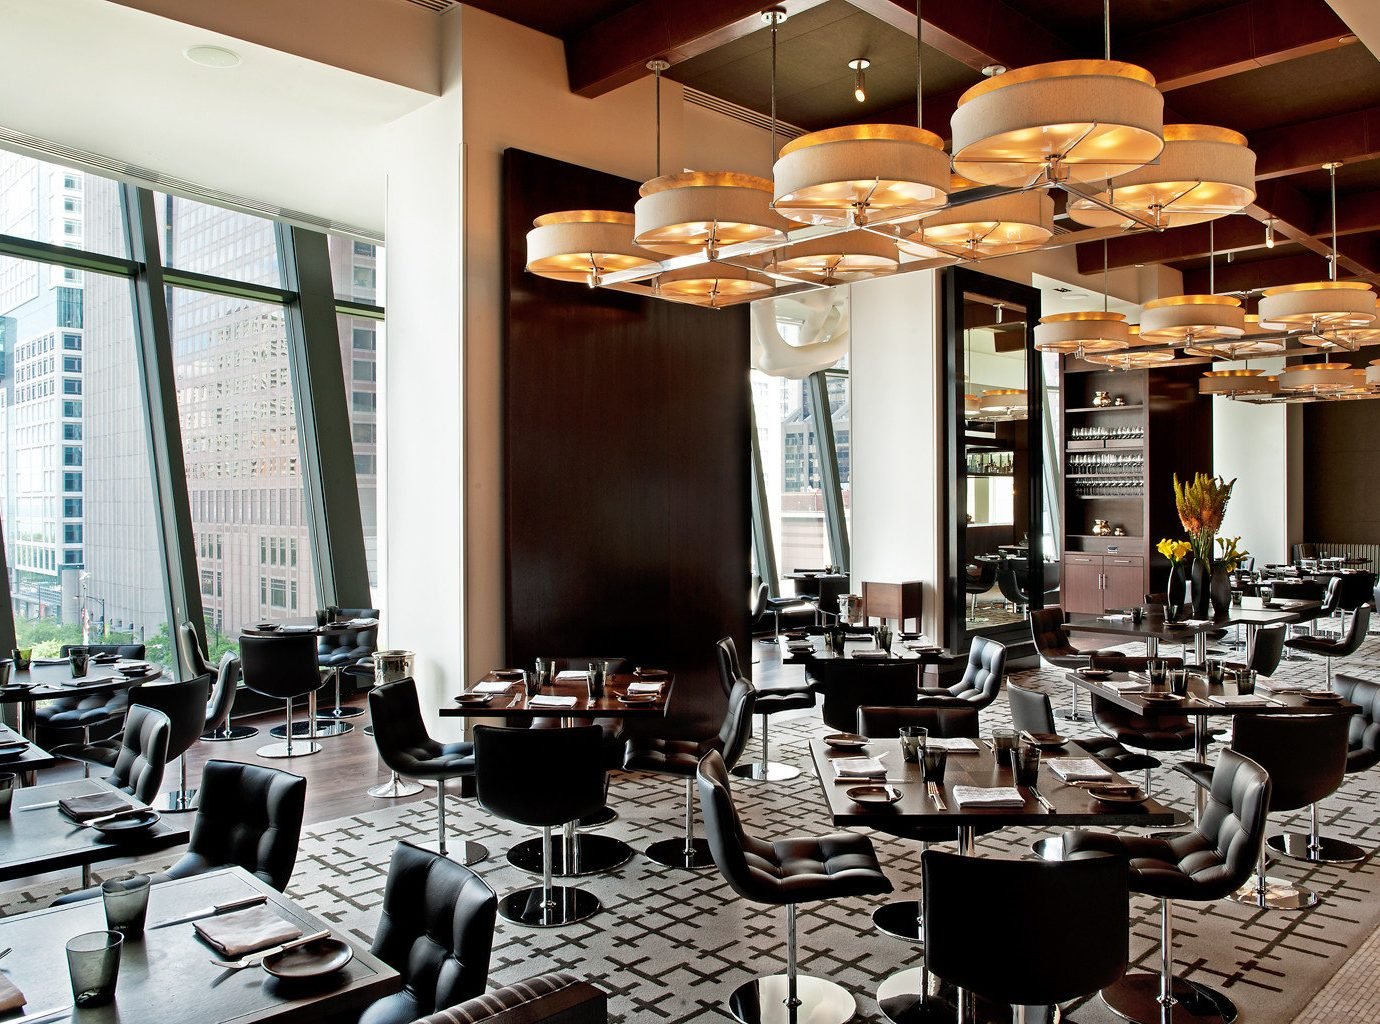 Bar Dining Drink Eat Hip Hotels Luxury Modern indoor table window Living room restaurant furniture interior design Lobby café conference hall function hall condominium meal cafeteria convention center area set several dining table